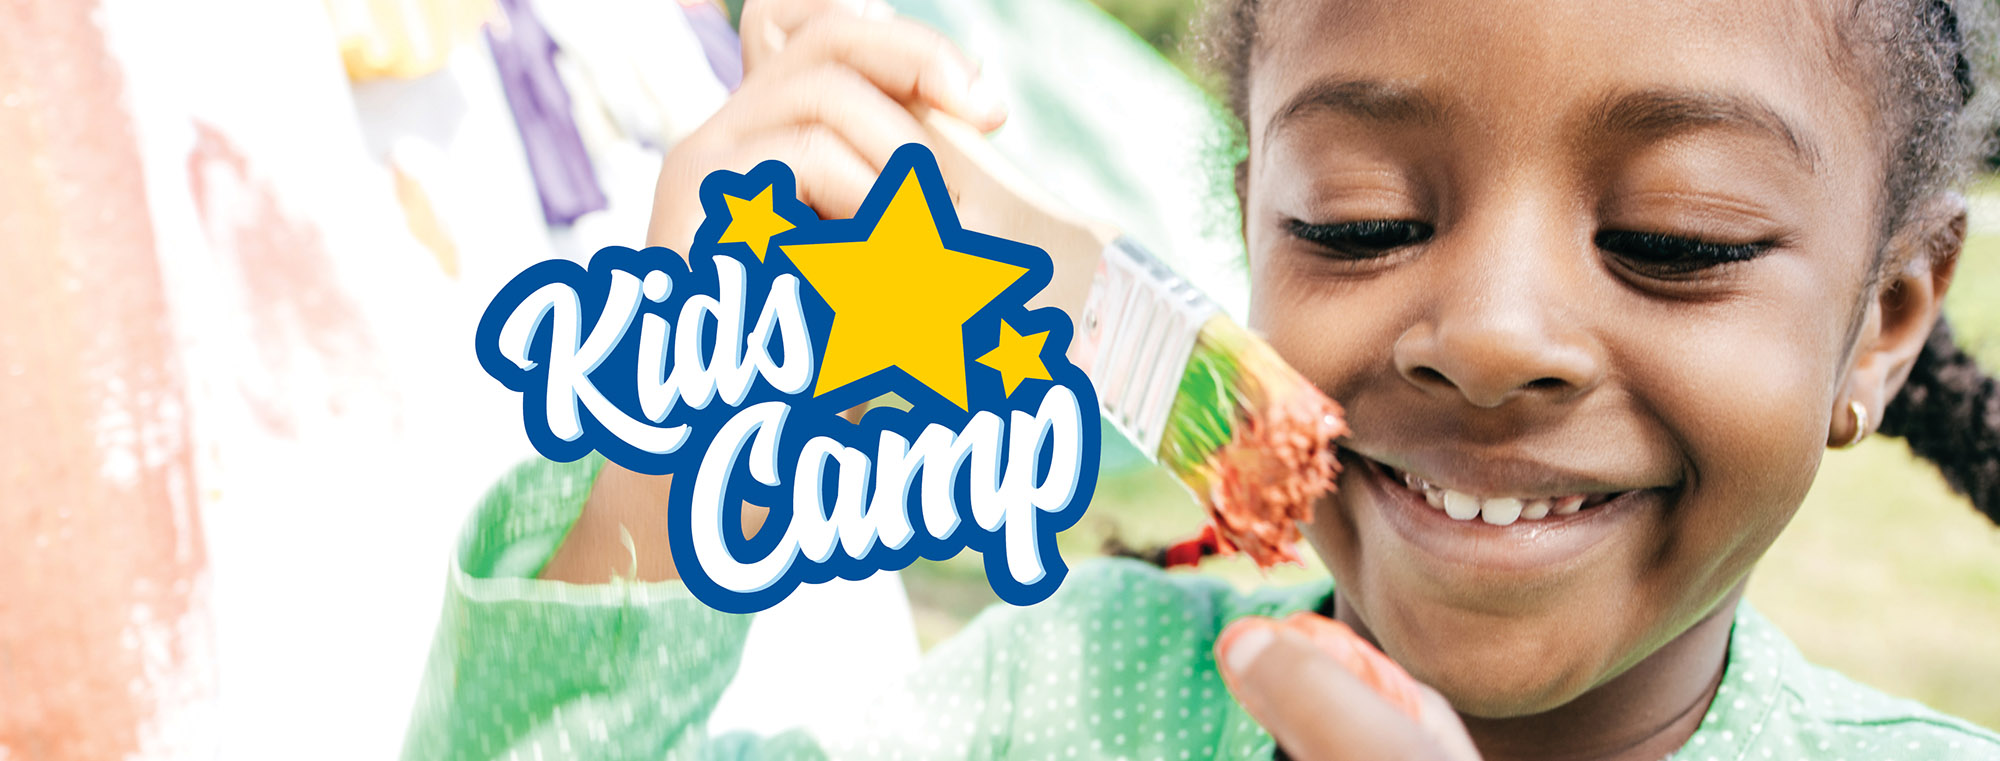 Kids Summer Camp banner image